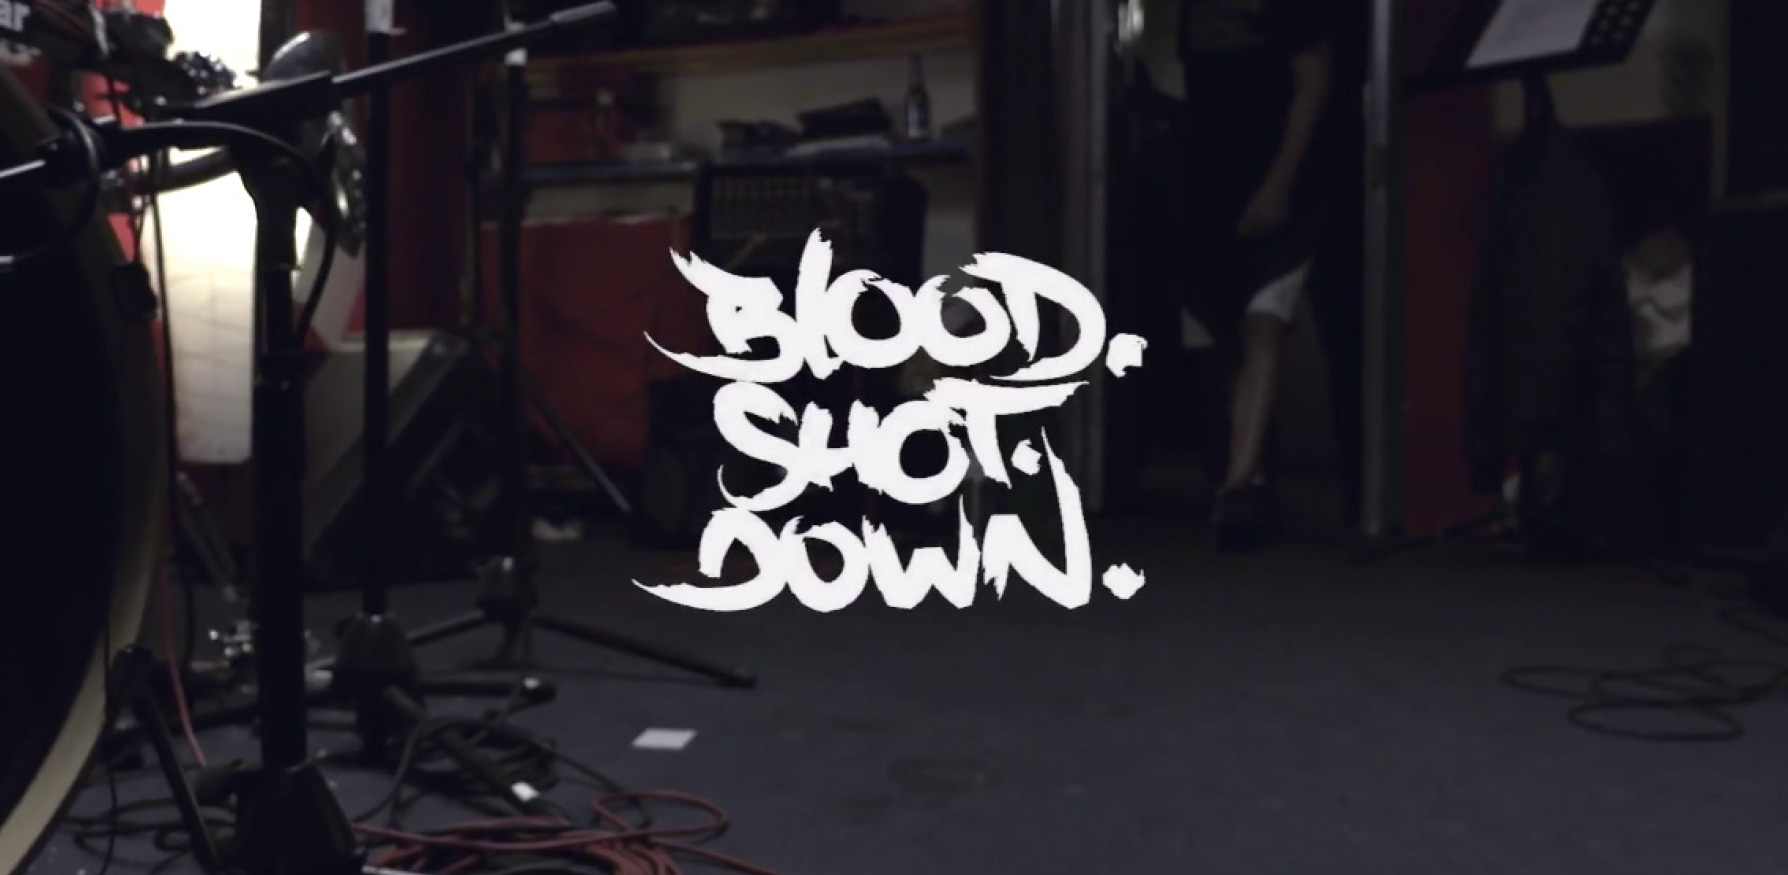 Blood-Shot-Down-The-Cut-01